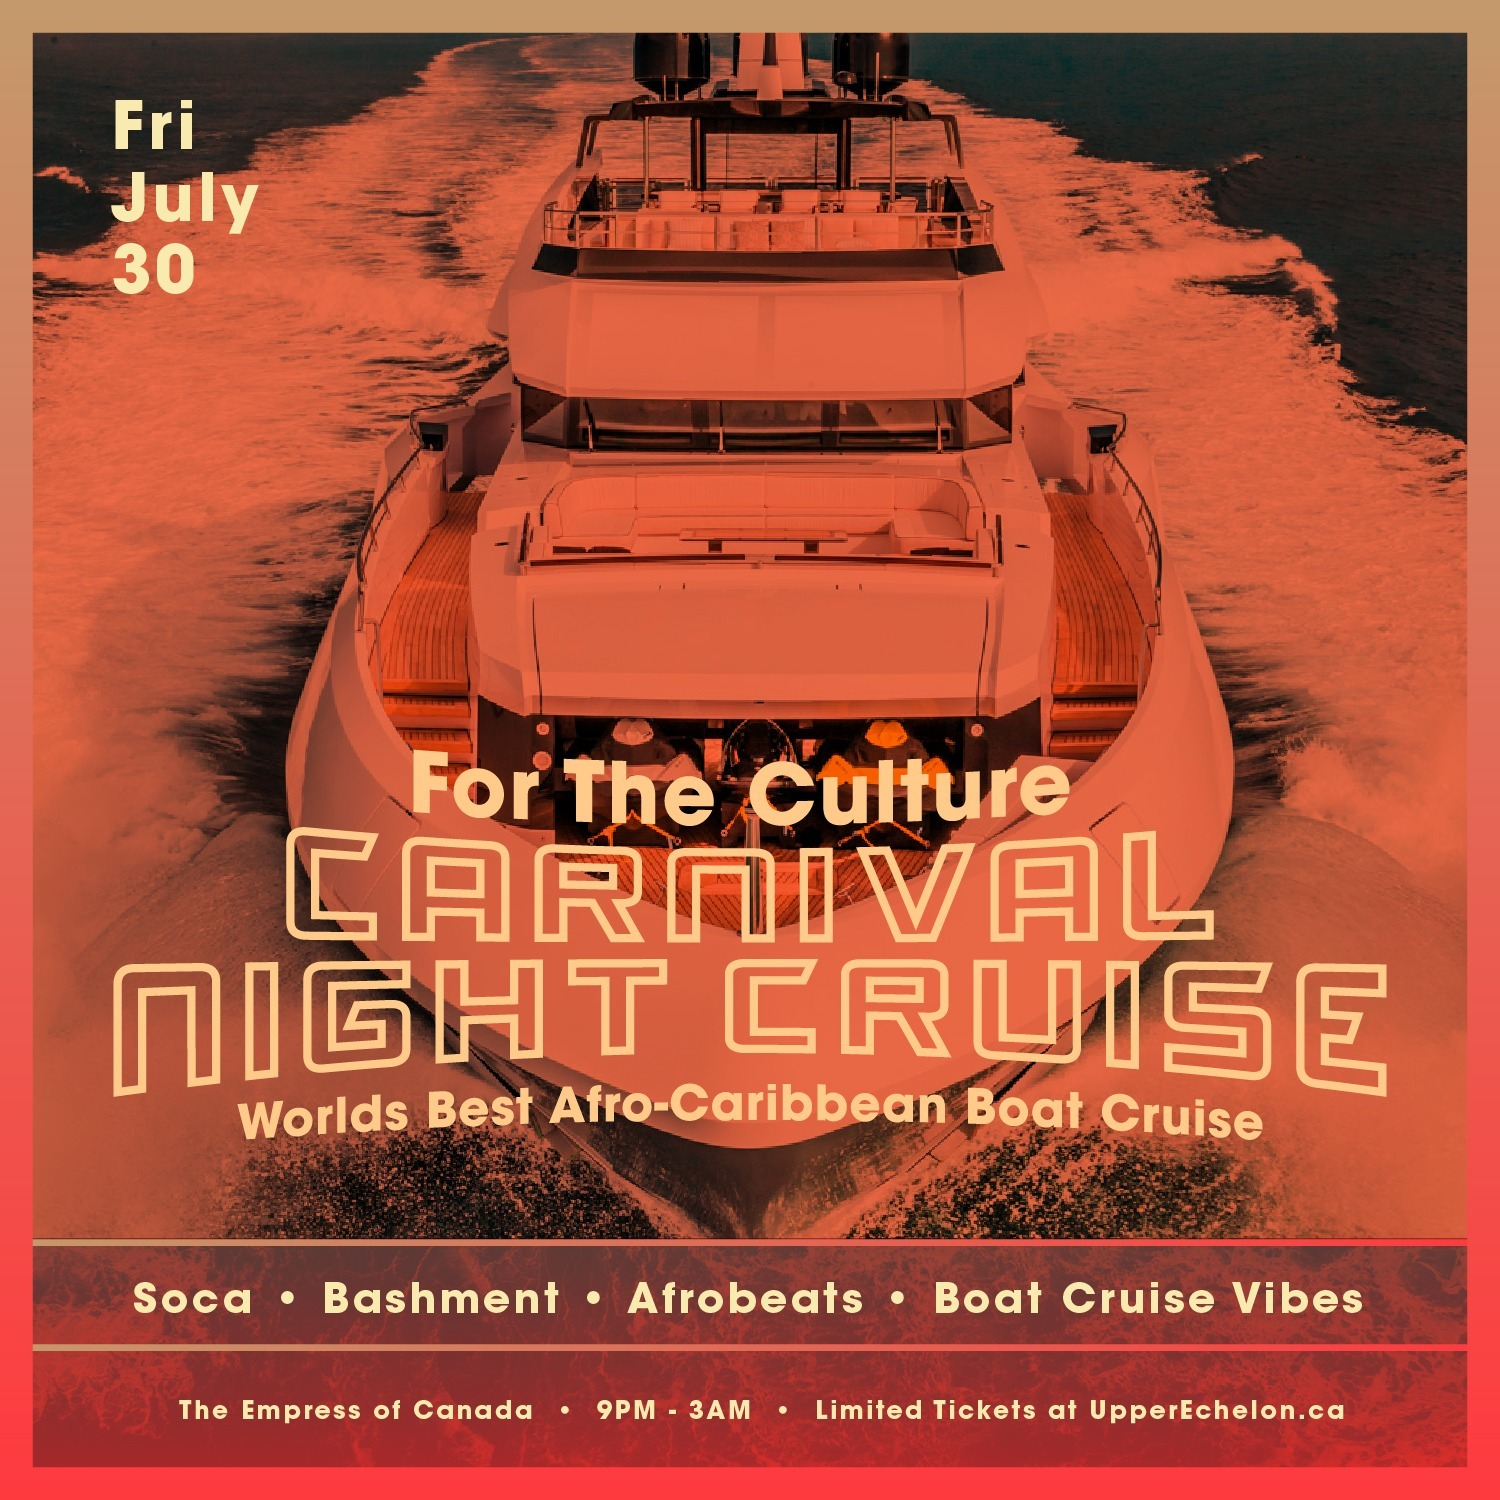 For The Culture | Carnival NIGHT Cruise | Carnival Friday